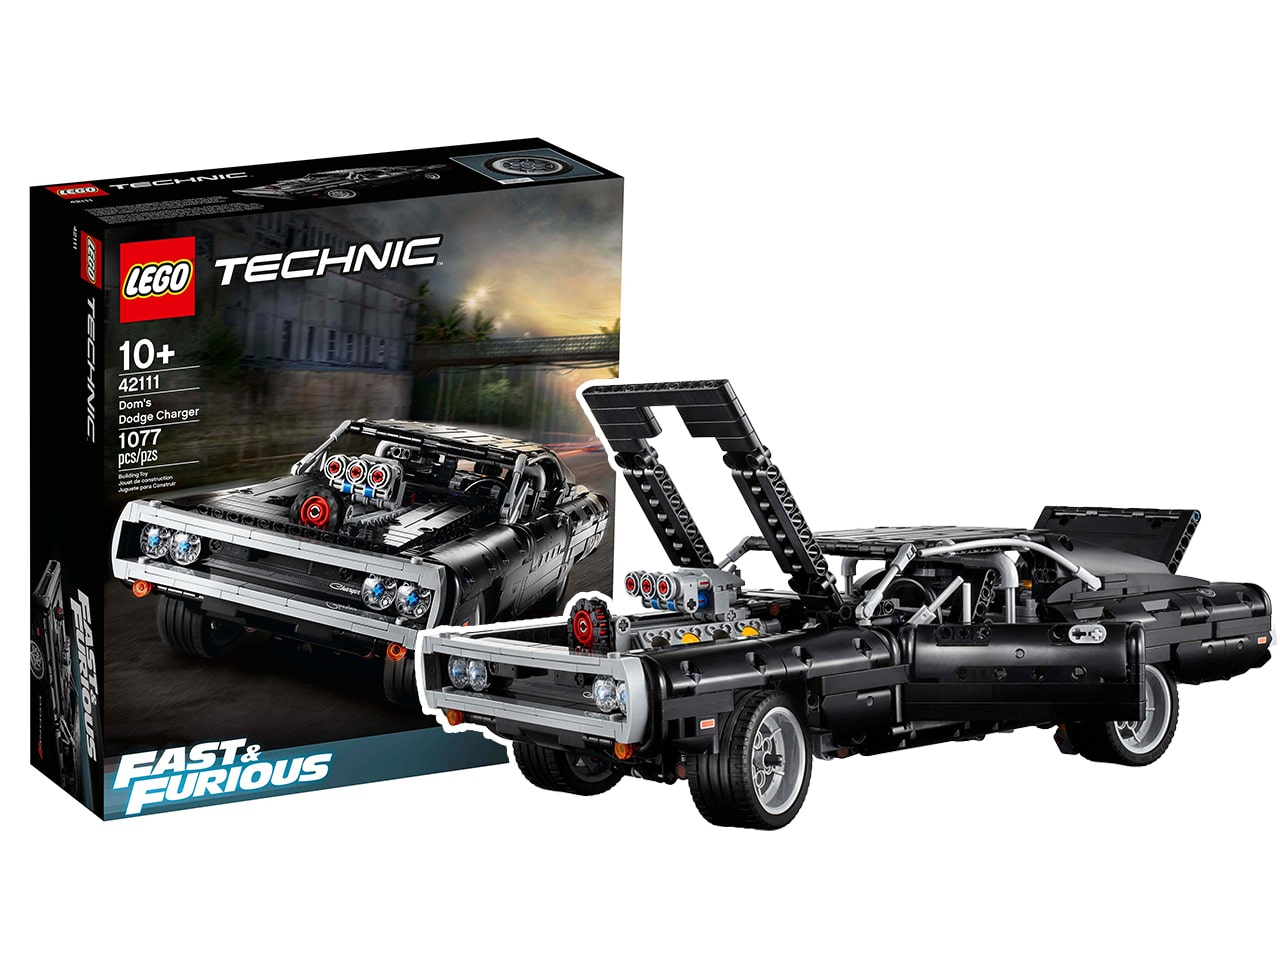 LEGO 42111 Dodge Charger